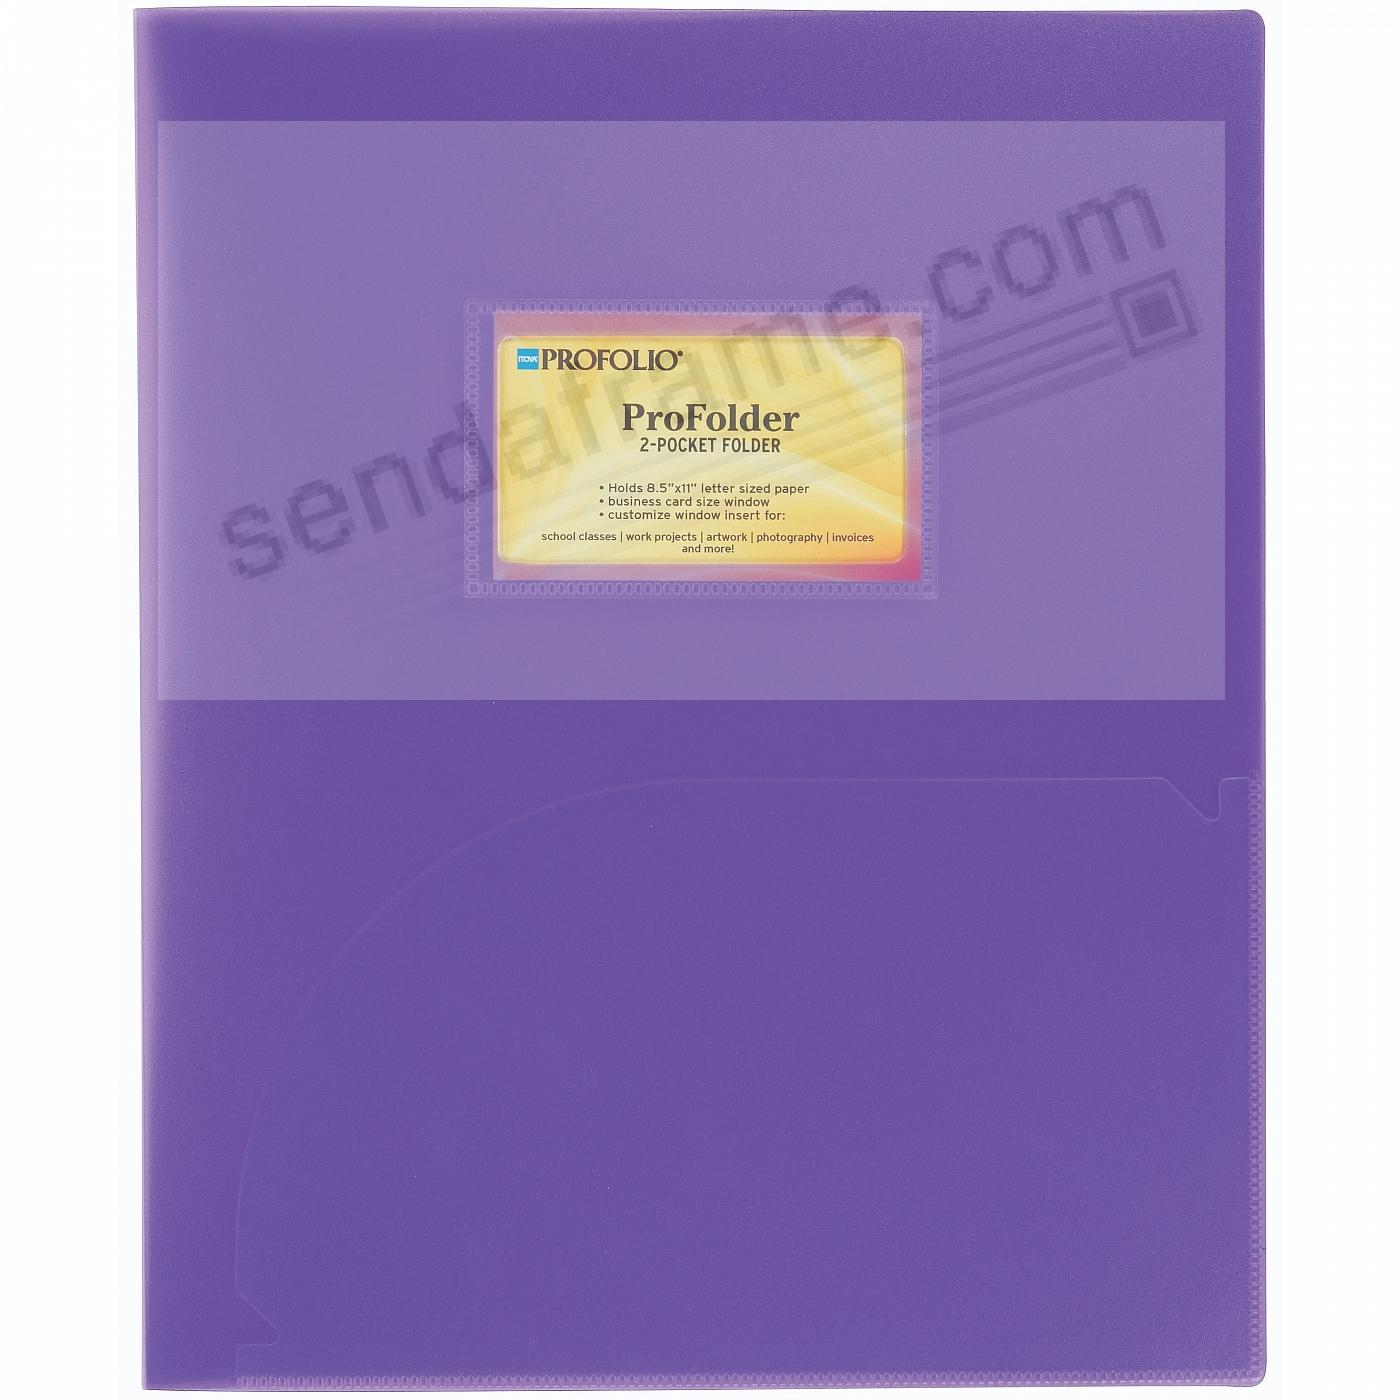 ProFolio® 2-Pocket ProFolder by Itoya® - PURPLE (set of 6)